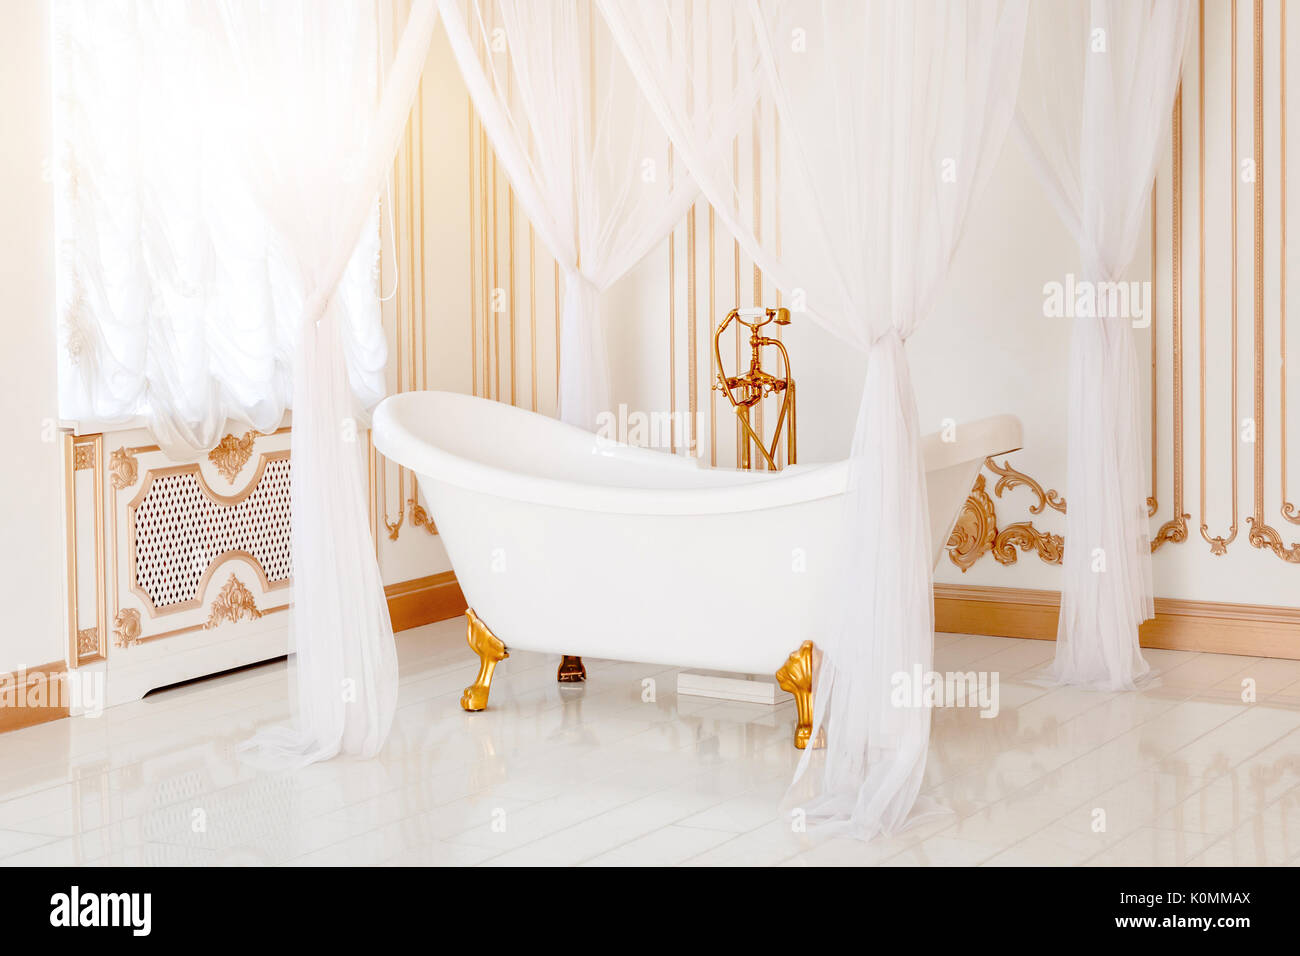 Luxury bathroom in light colors with golden furniture details and ...